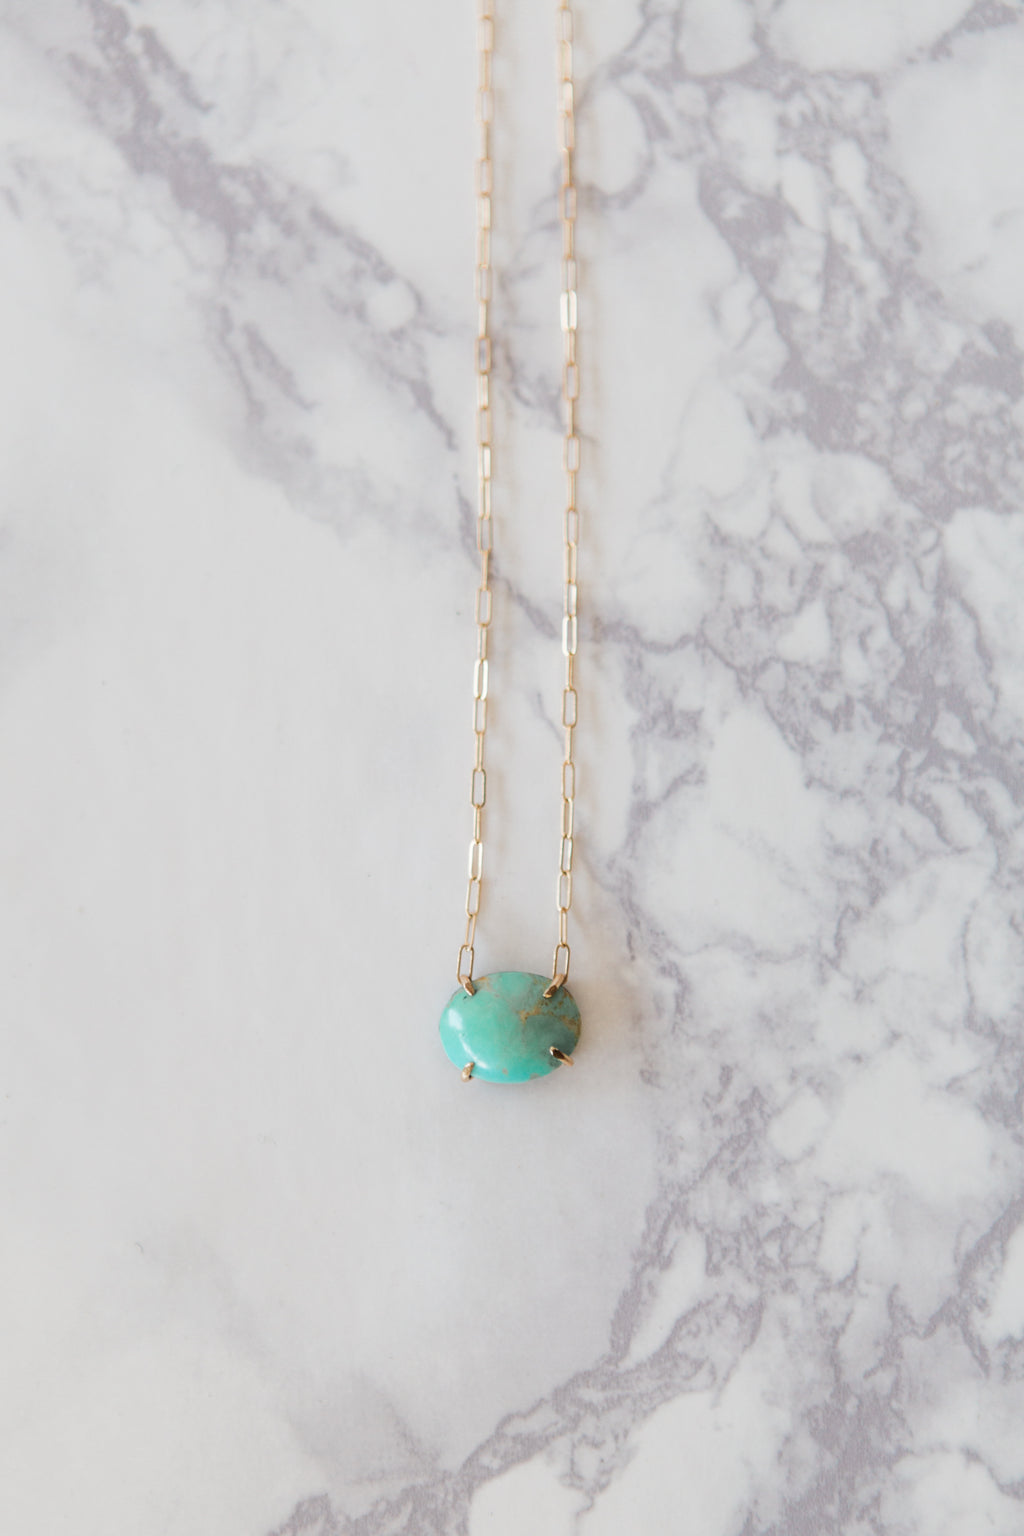 Delicate Turquoise & Gold Necklace - M Street Studio